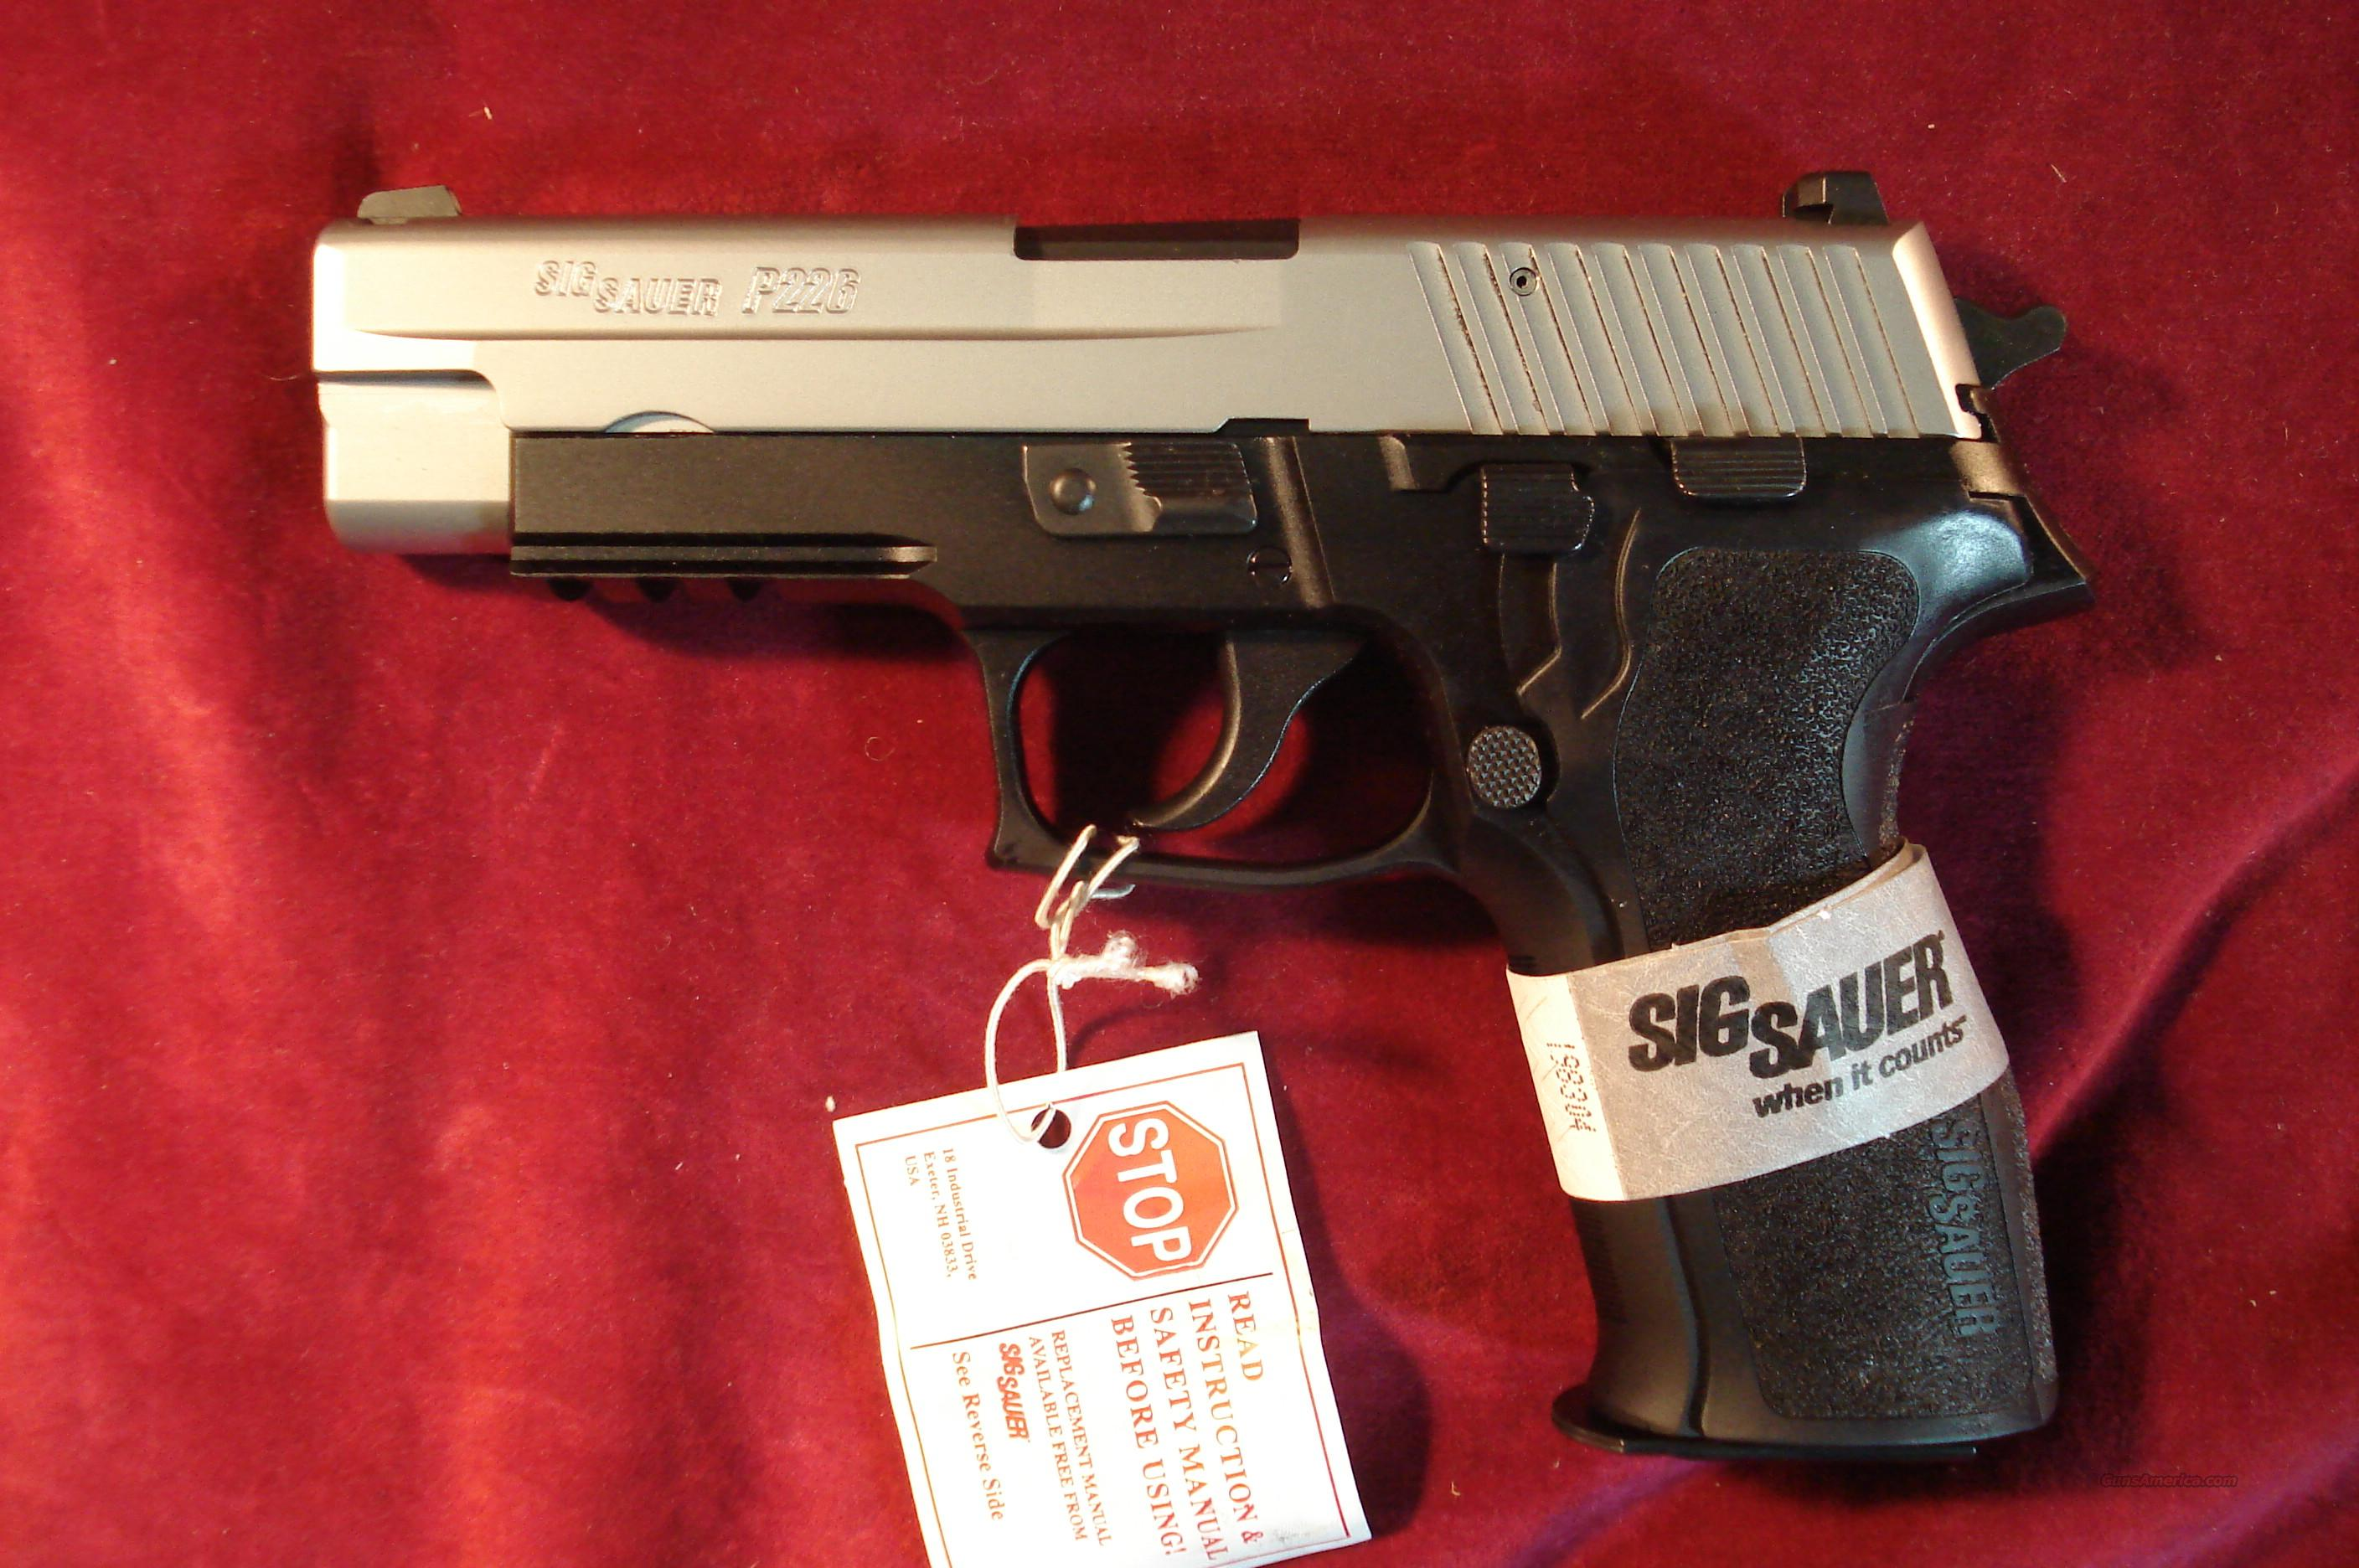 SIG SAUER P226 TWO TONE 9MM W/NIGHT SIGHTS NEW  Guns > Pistols > Sig - Sauer/Sigarms Pistols > P226